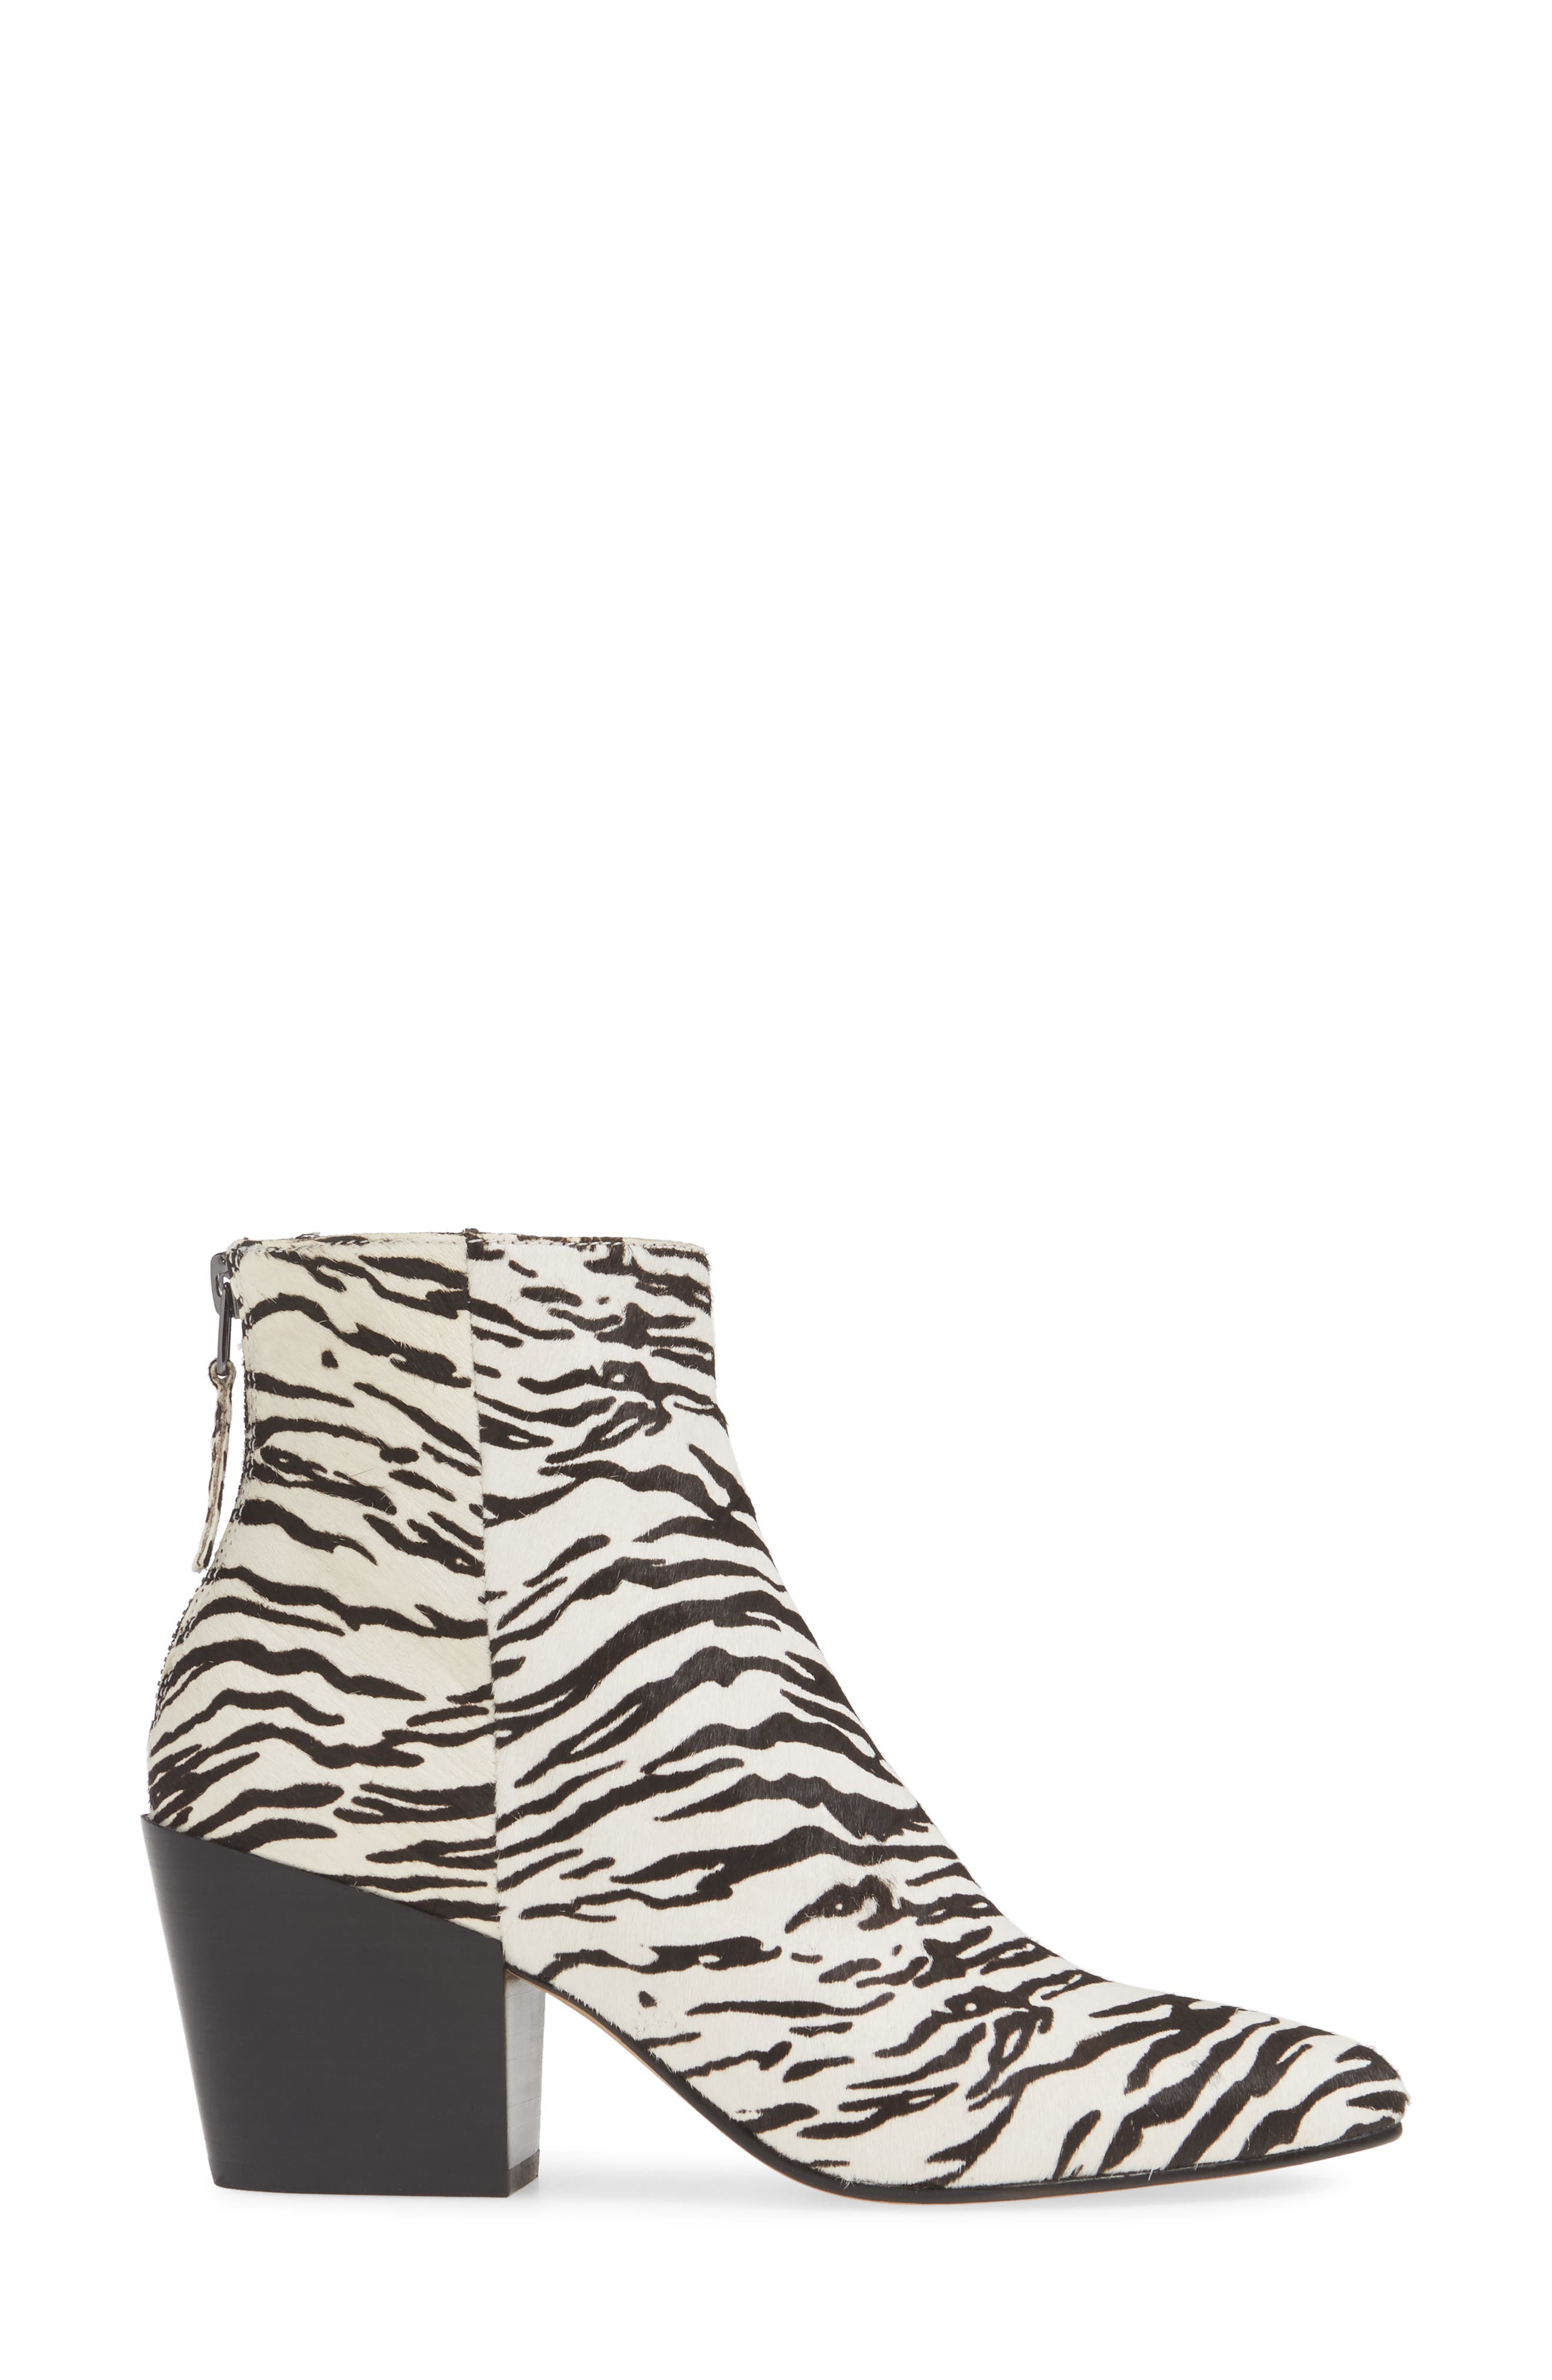 DOLCE VITA, Coltyn Bootie, Alternate thumbnail 3, color, 002